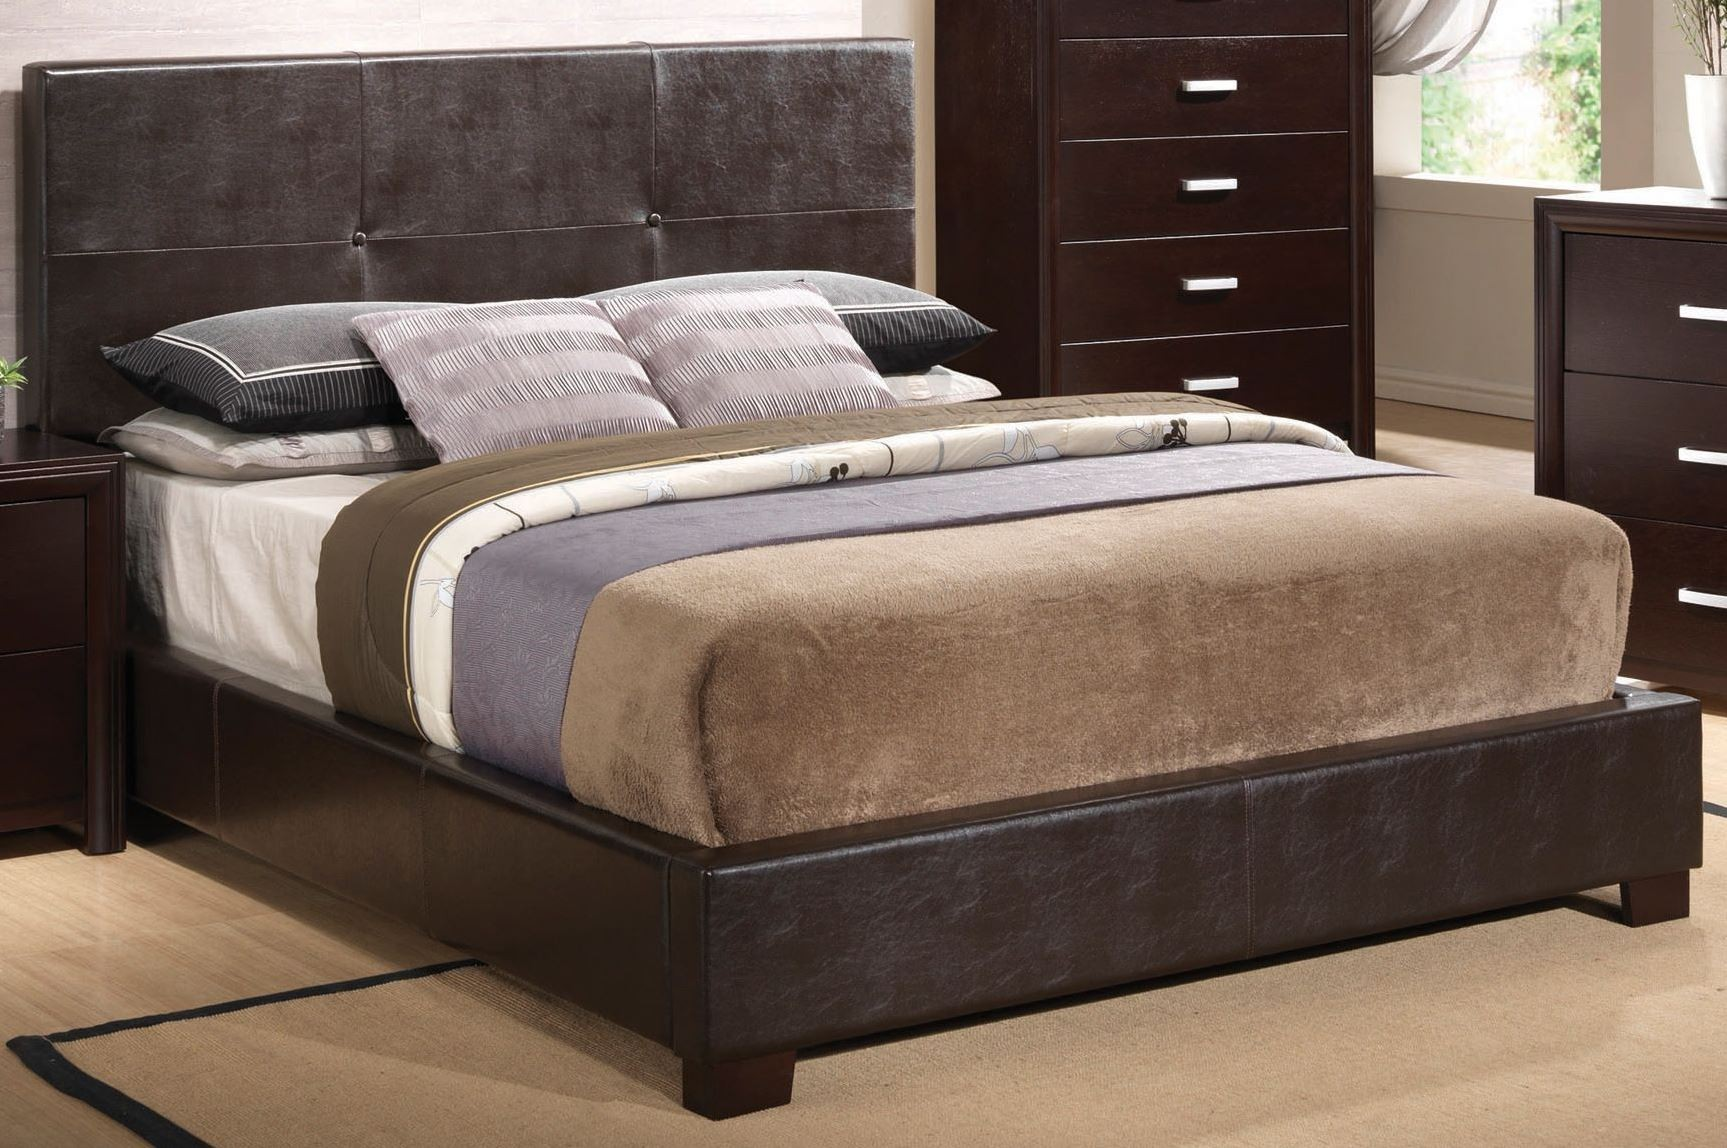 Andreas cappuccino queen platform bed from coaster Andreas furniture